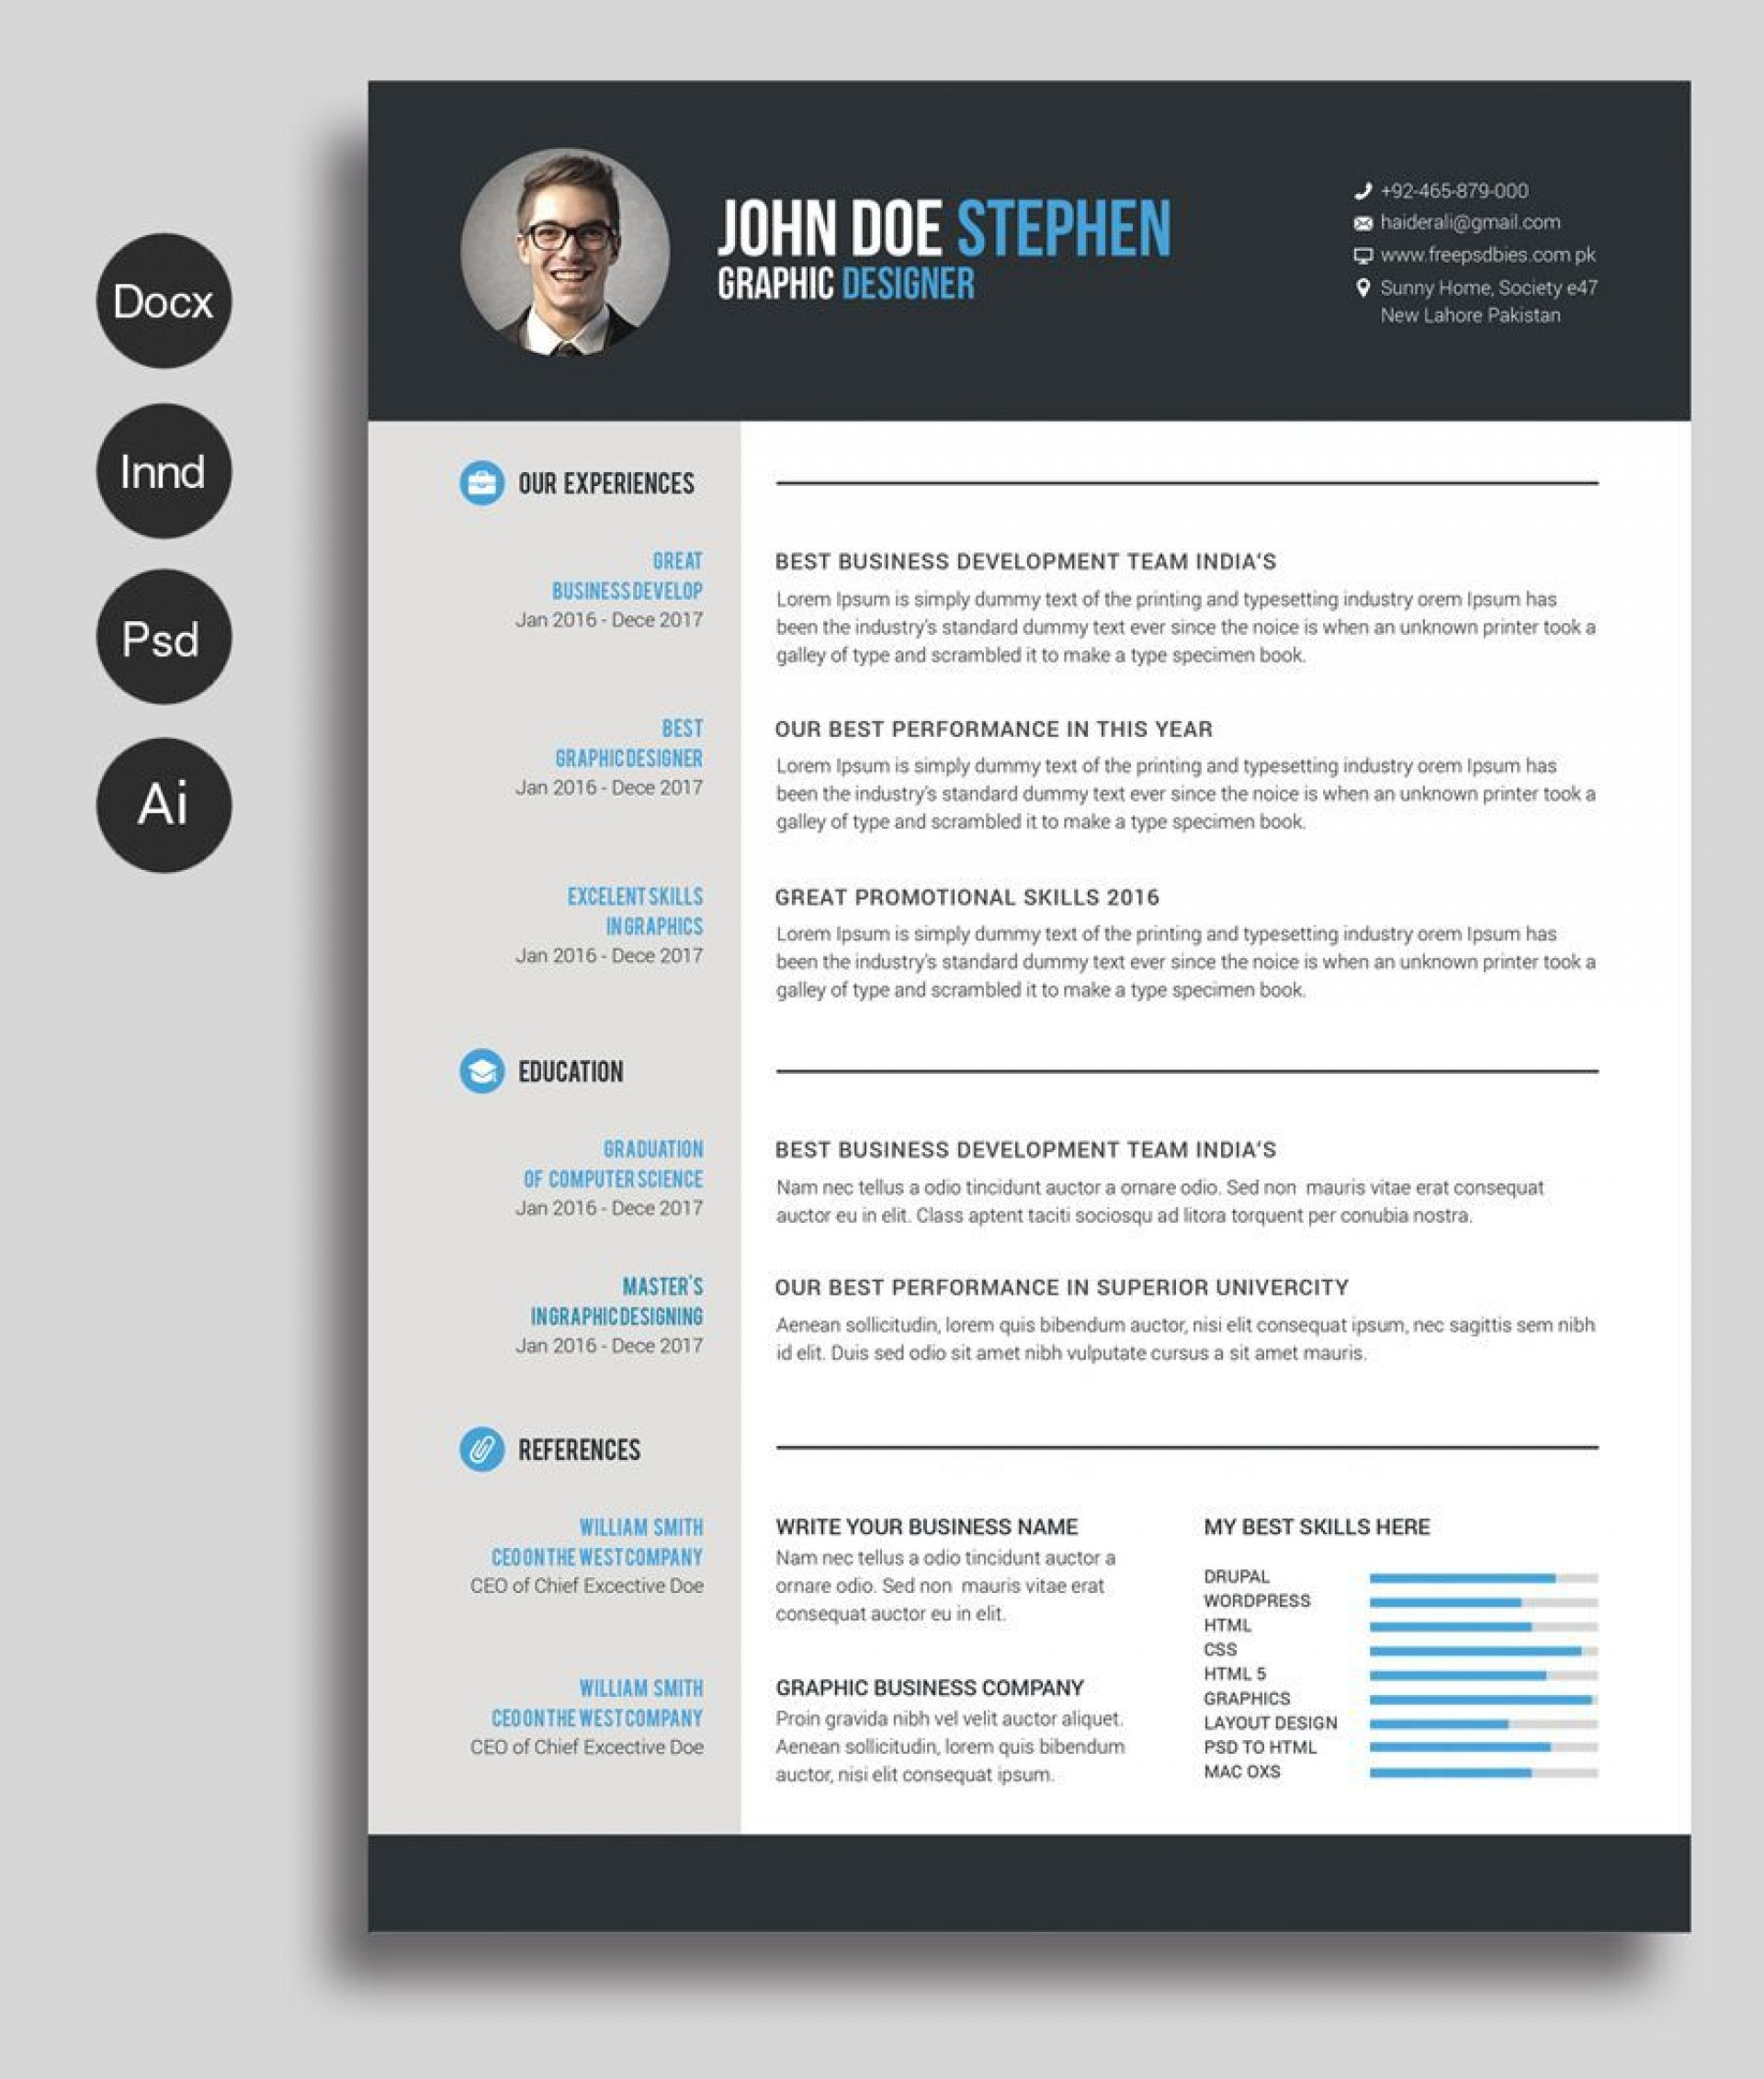 000 Stunning Create A Resume Template Free Image  Your Own Writing1920